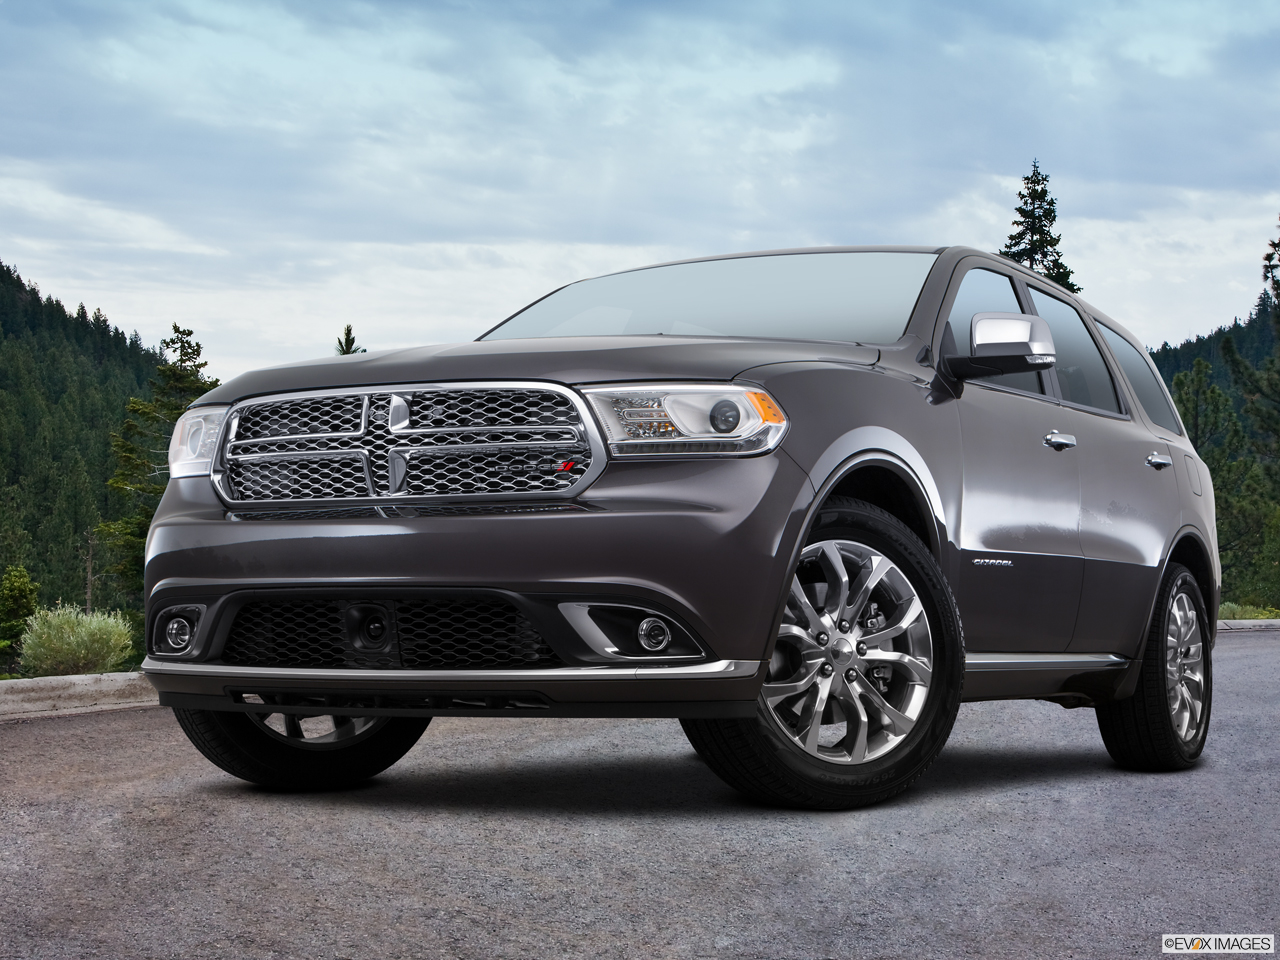 2017 dodge durango treasure coast arrigo ft pierce. Cars Review. Best American Auto & Cars Review